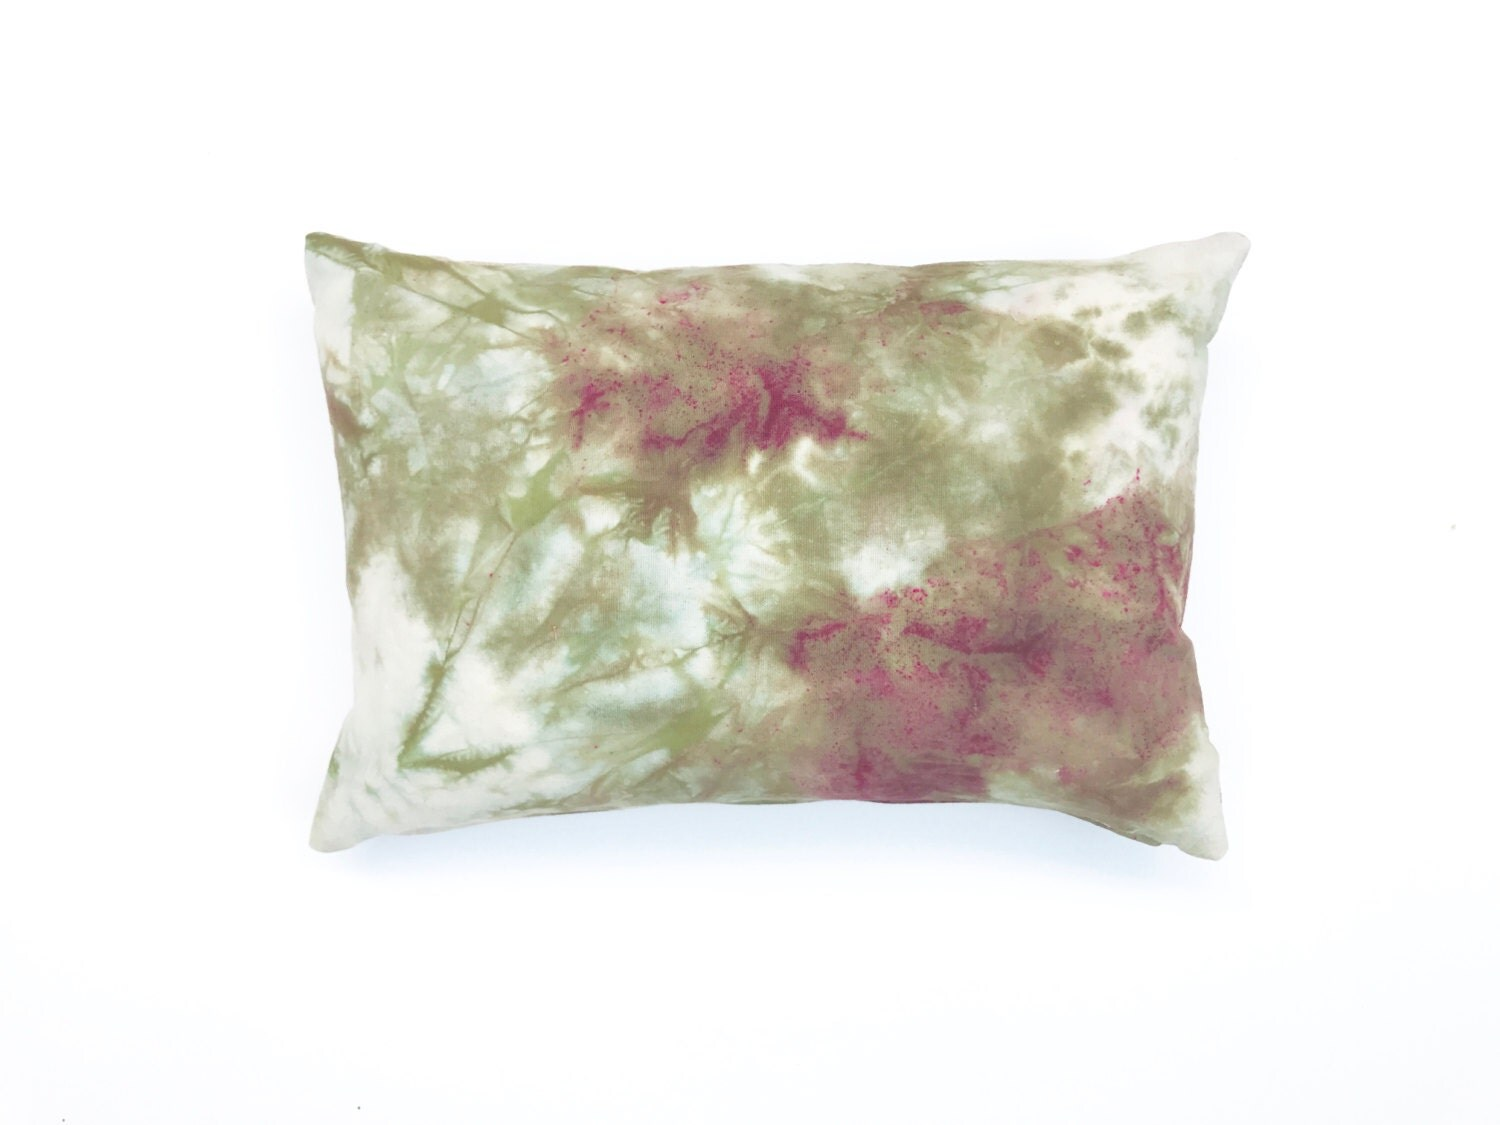 Burgundy Green Throw Pillows : Burgundy and Green Pillow Hand dyed Throw Pillow Marbled